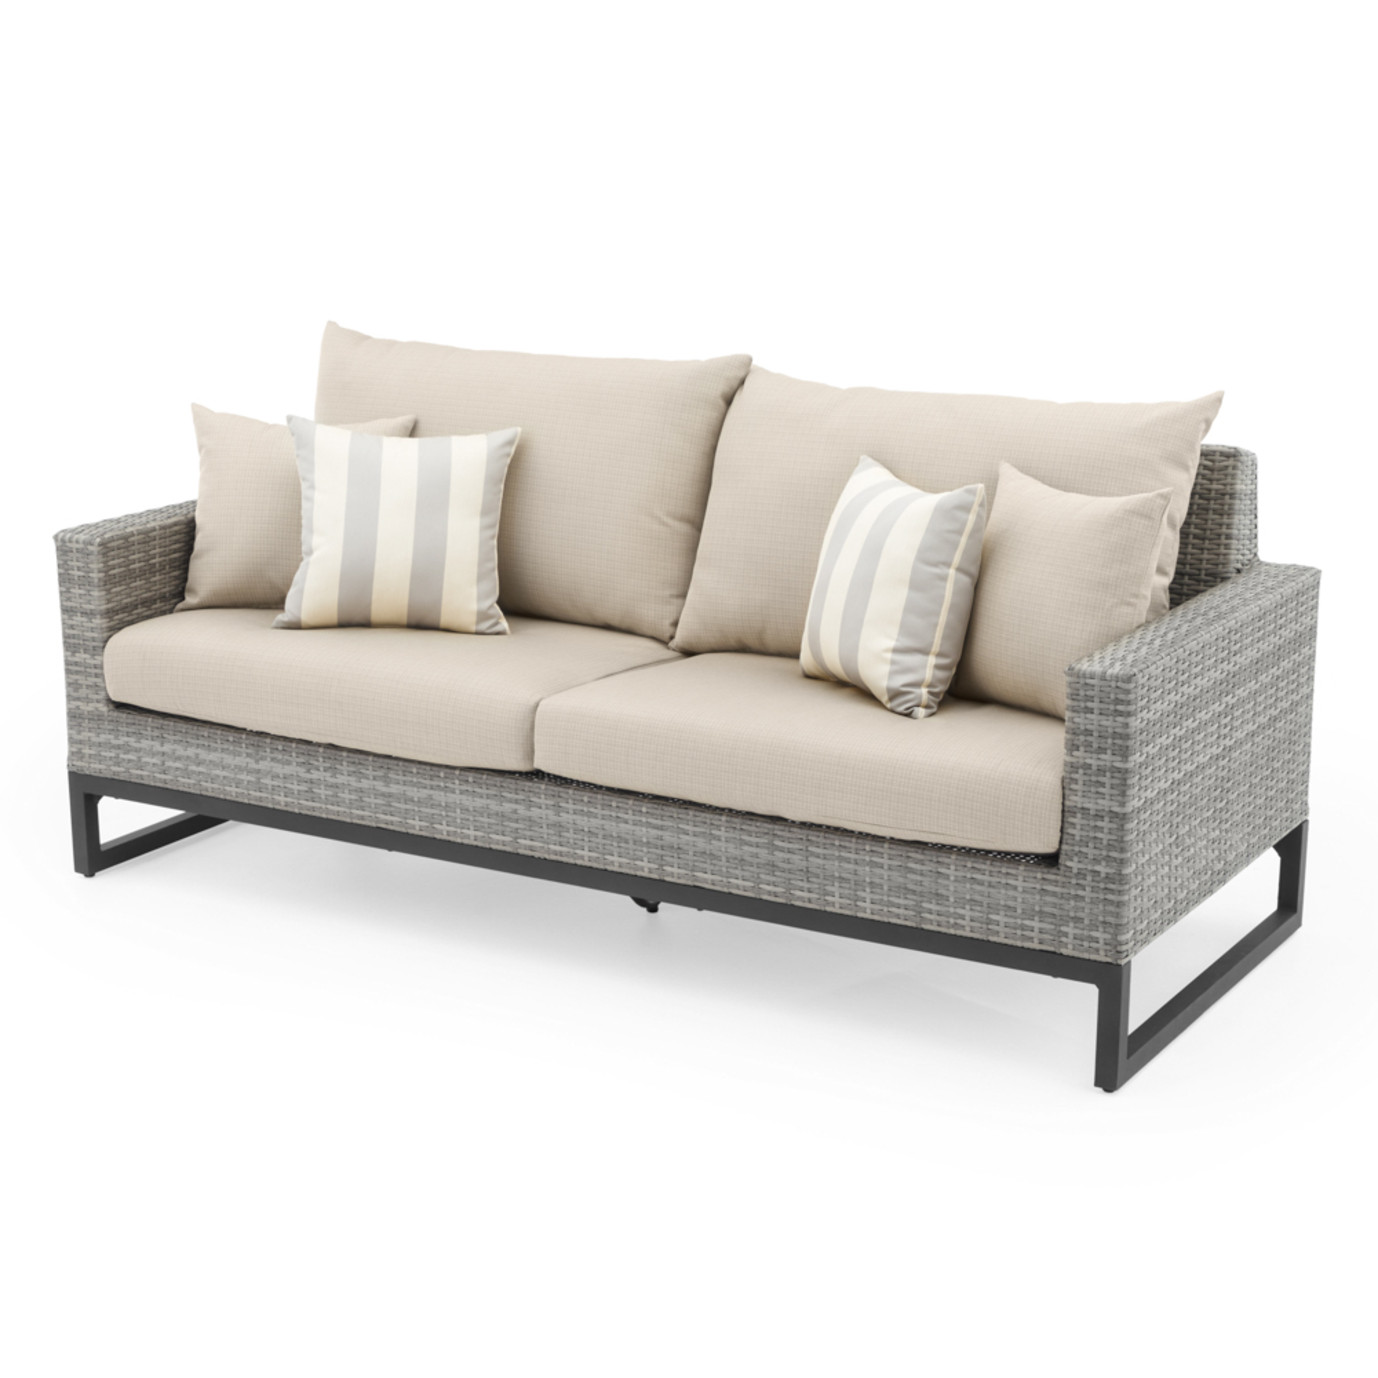 Milo™ Gray 78in Sofa - Slate Gray